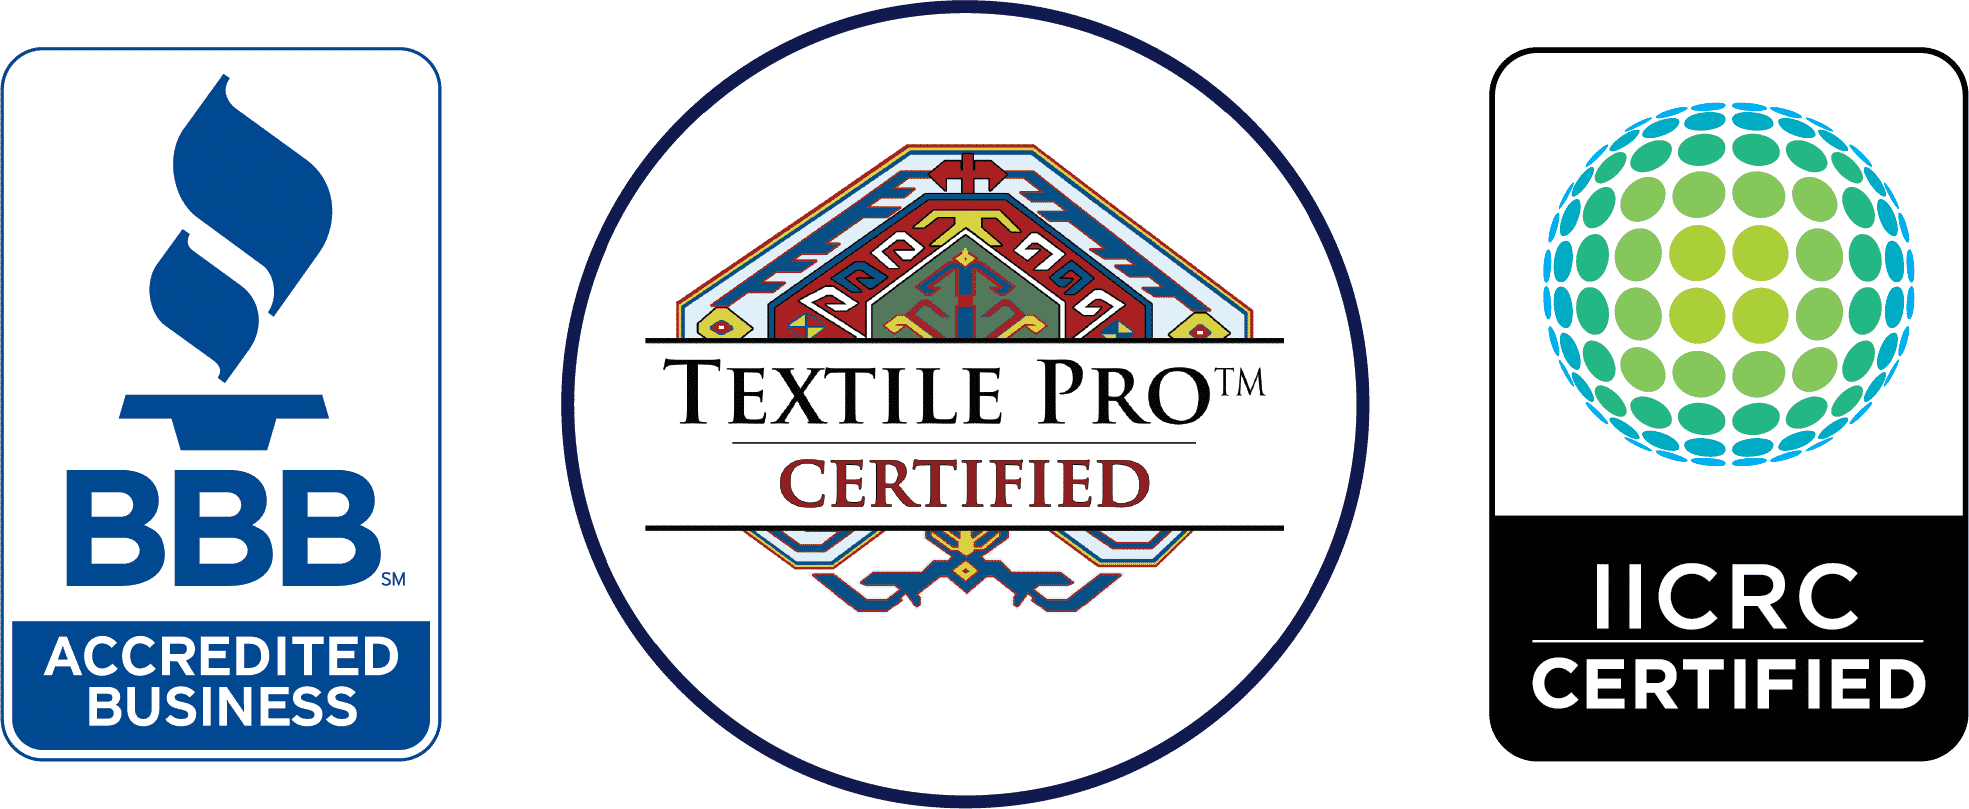 Better Business Bureau Accredited Business; Certified Textile Pro; IICRC Certified